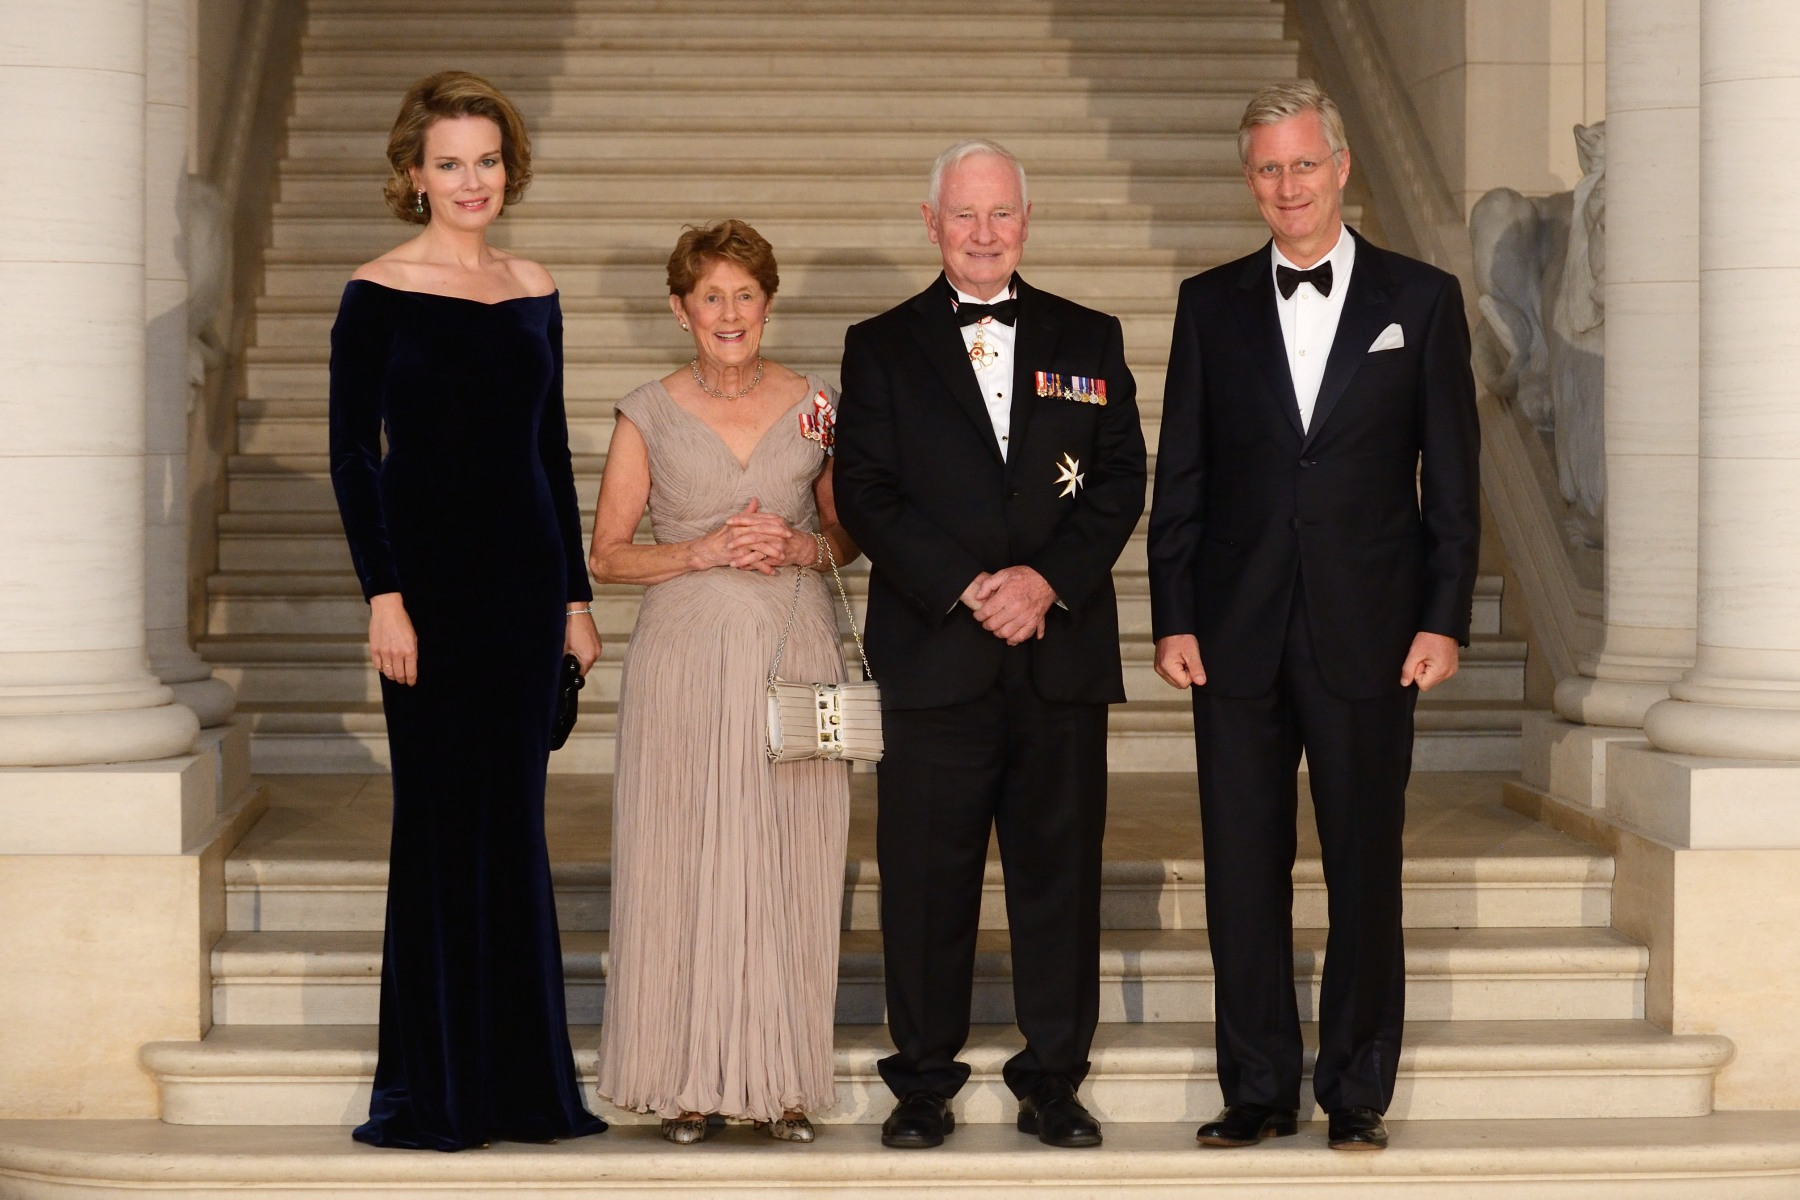 In the evening, Their Excellencies and Canadian began their visit to Belgium. Their Excellencies attended a dinner hosted by His Majesty King Philippe of the Belgians and Her Majesty Queen Mathilde in honour of their visit. Twenty representatives of the top Belgian businesses with trade or investment ties to Canada were also in attendance.